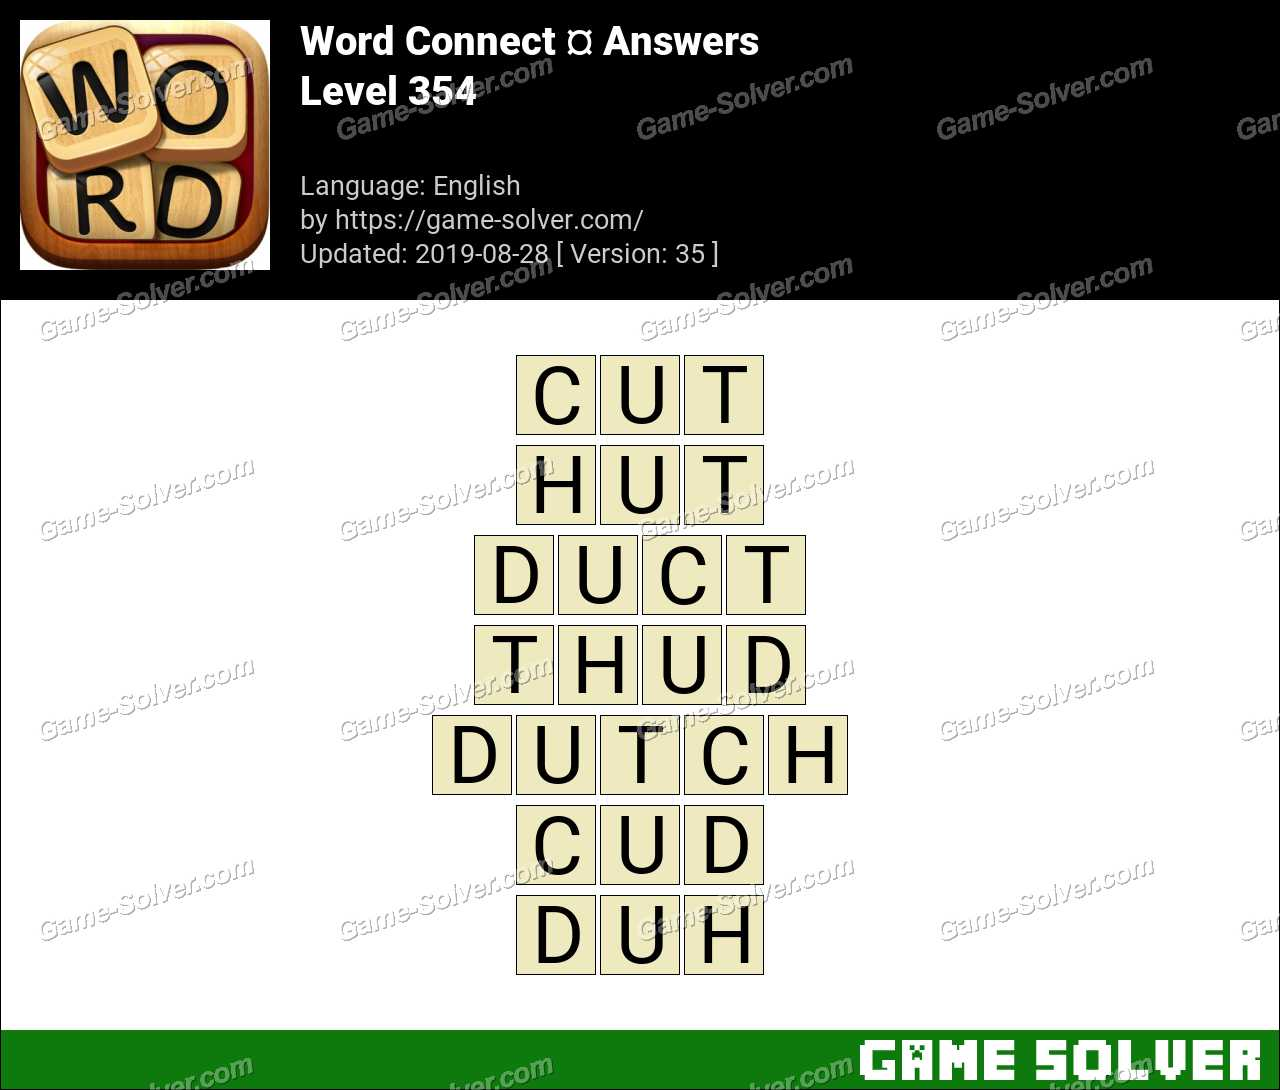 Word Connect Level 354 Answers